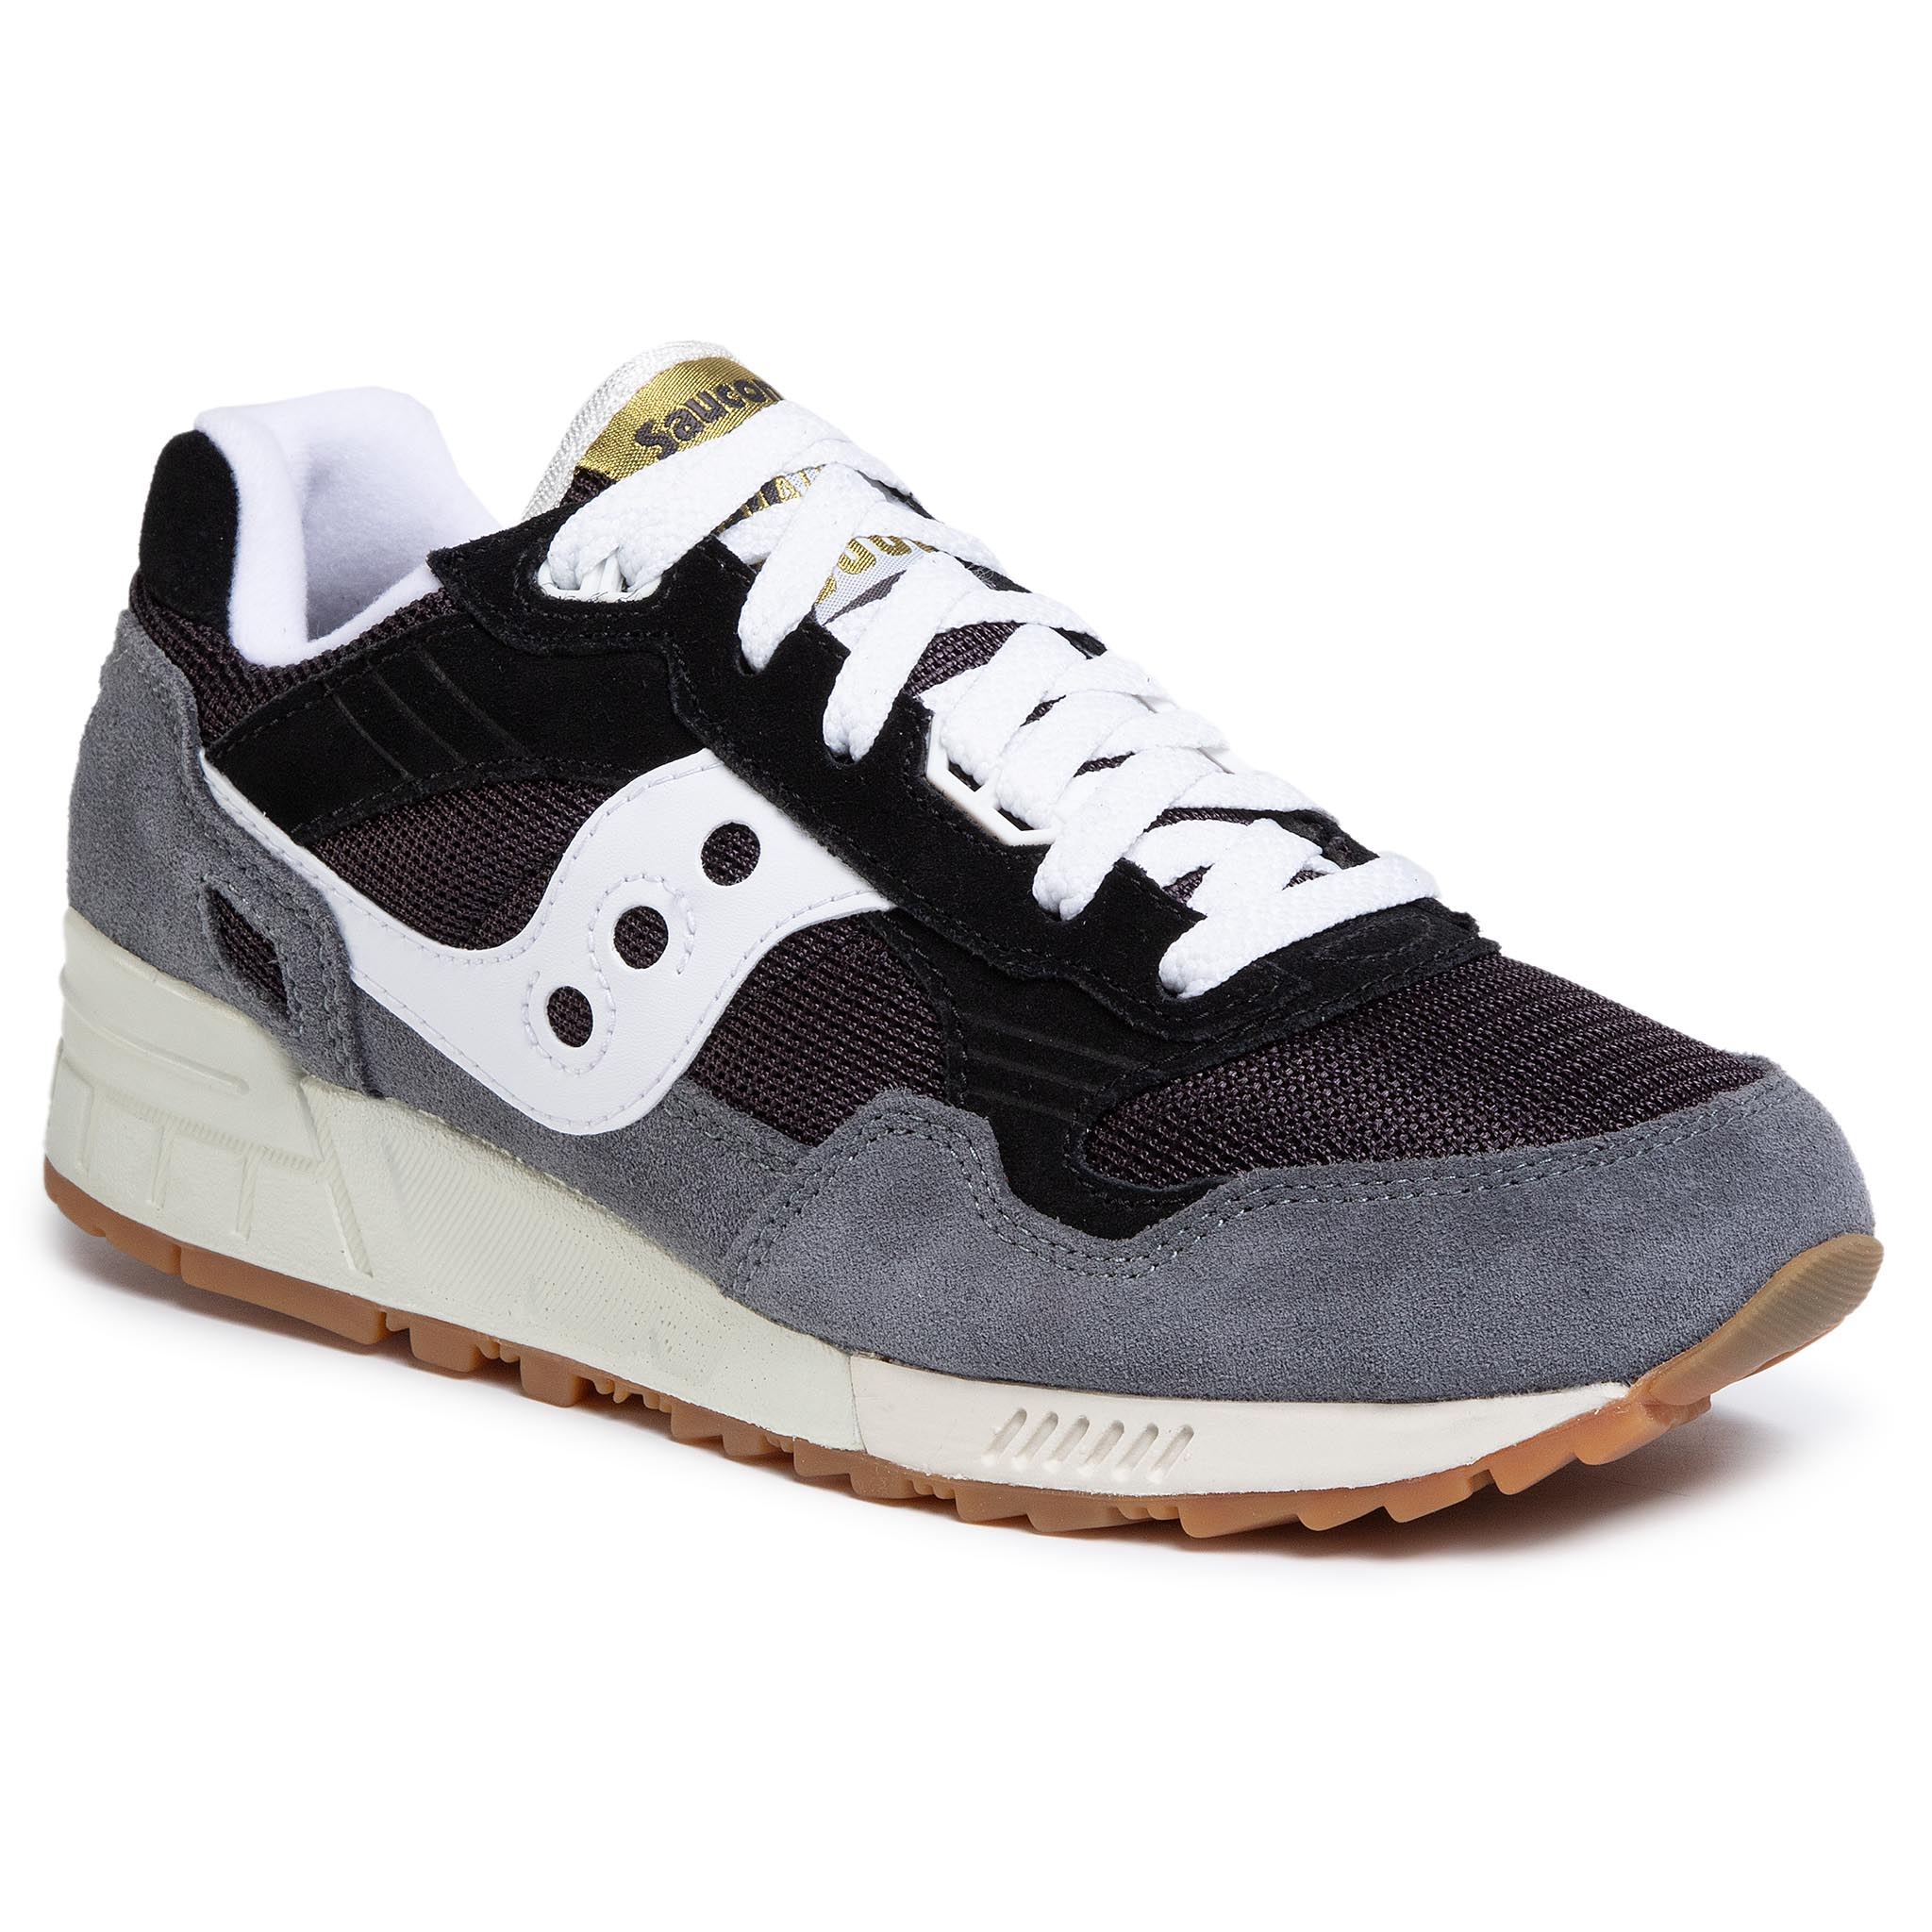 Sneakers SAUCONY - Shadow 5000 S70404-24 Nvy/Gry New